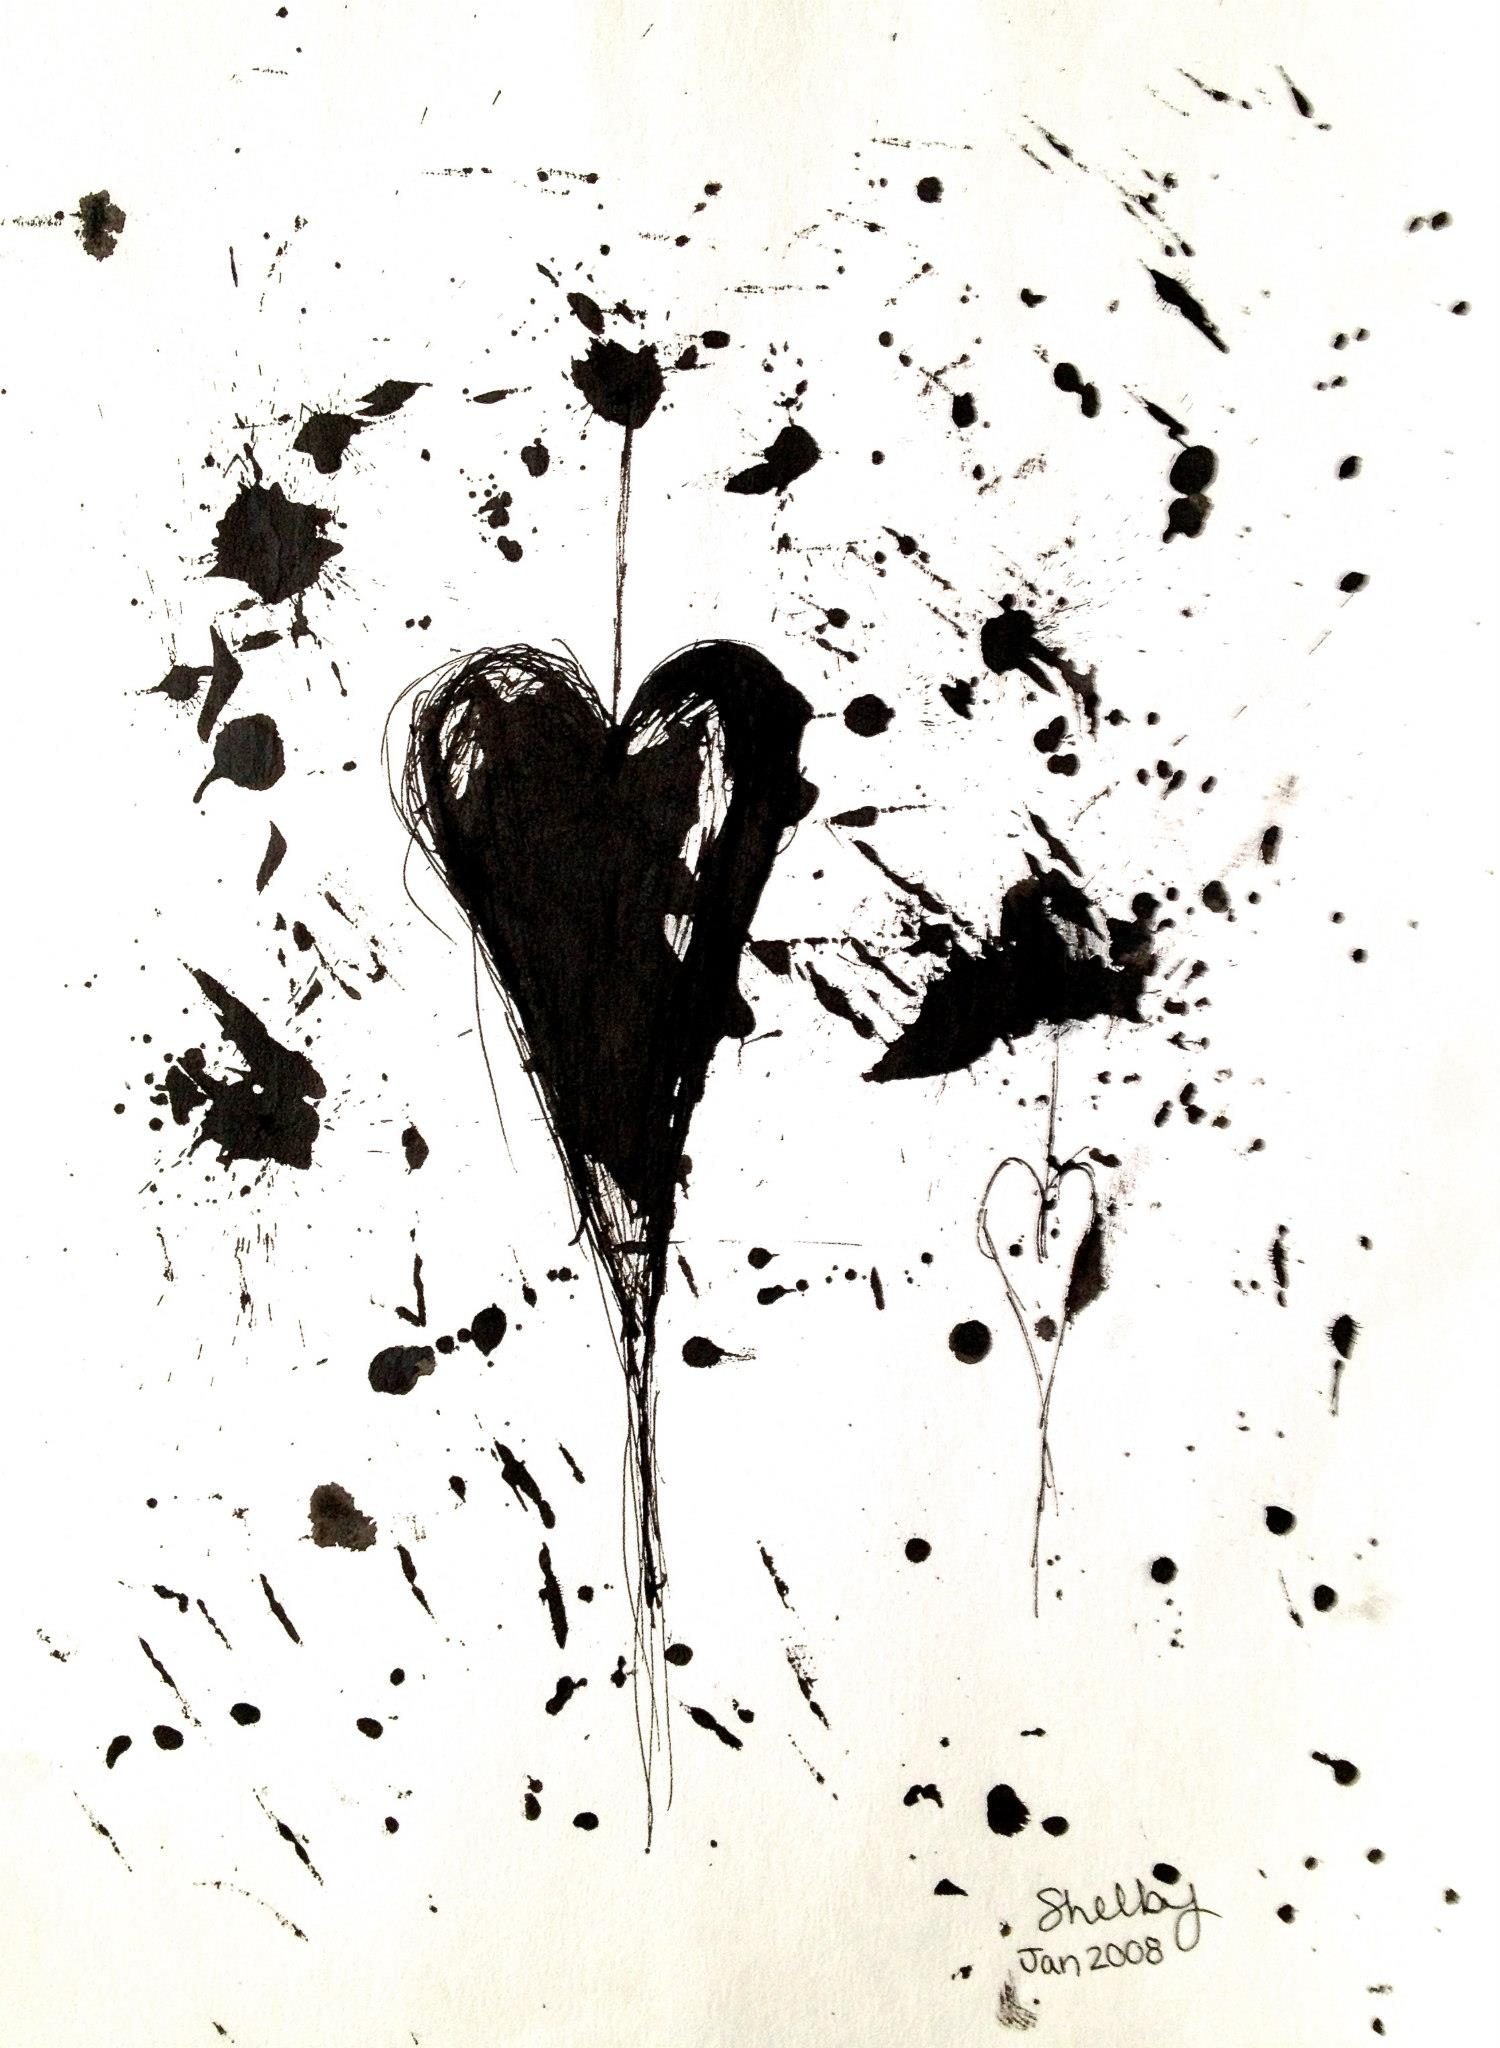 Heart Splatters (2008)